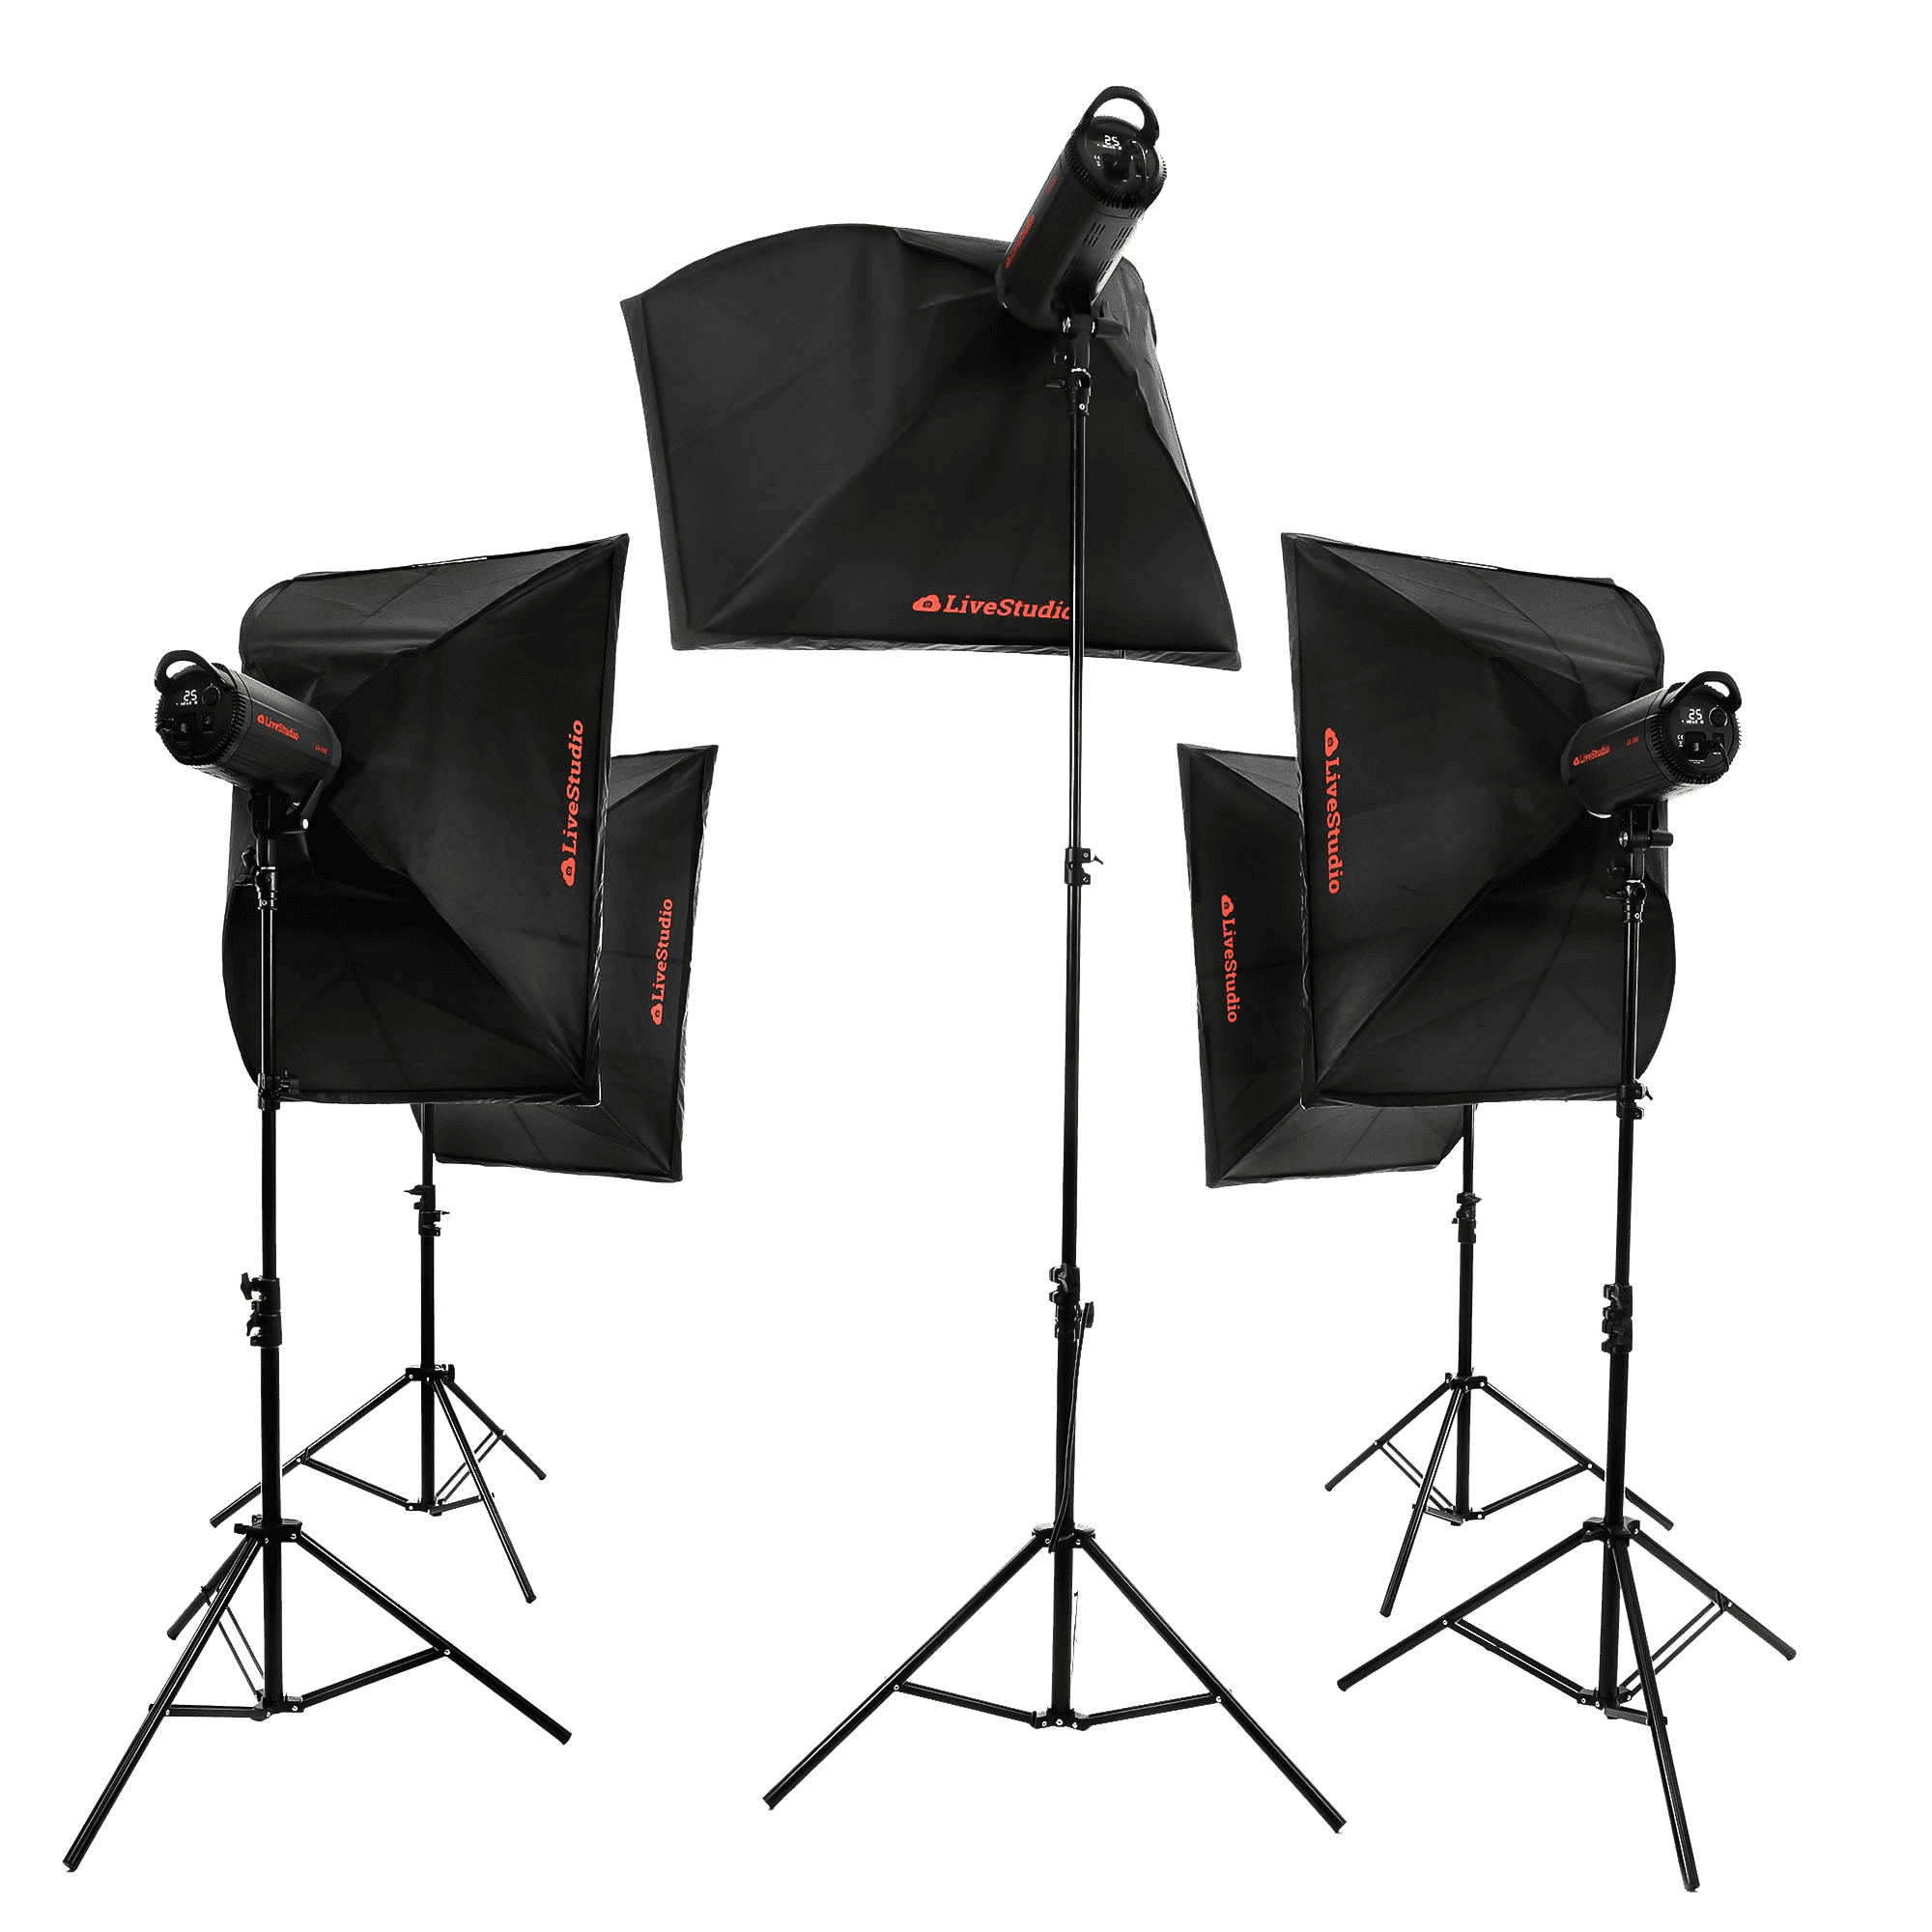 Ortery LiveStudio -5 light product photography kit and software